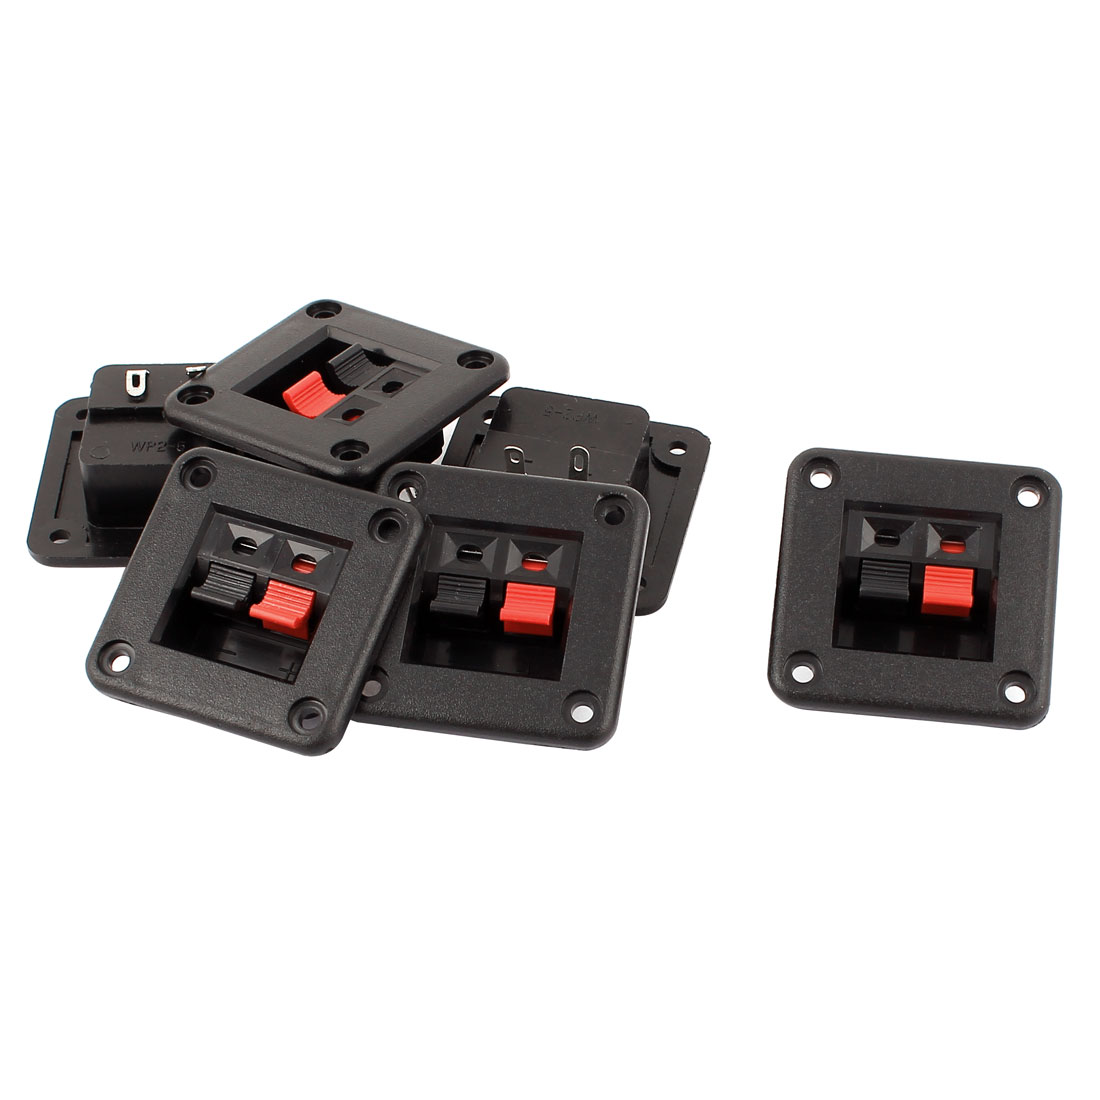 6 Pcs SPST Latching Electricial Push Button Switch Black Red